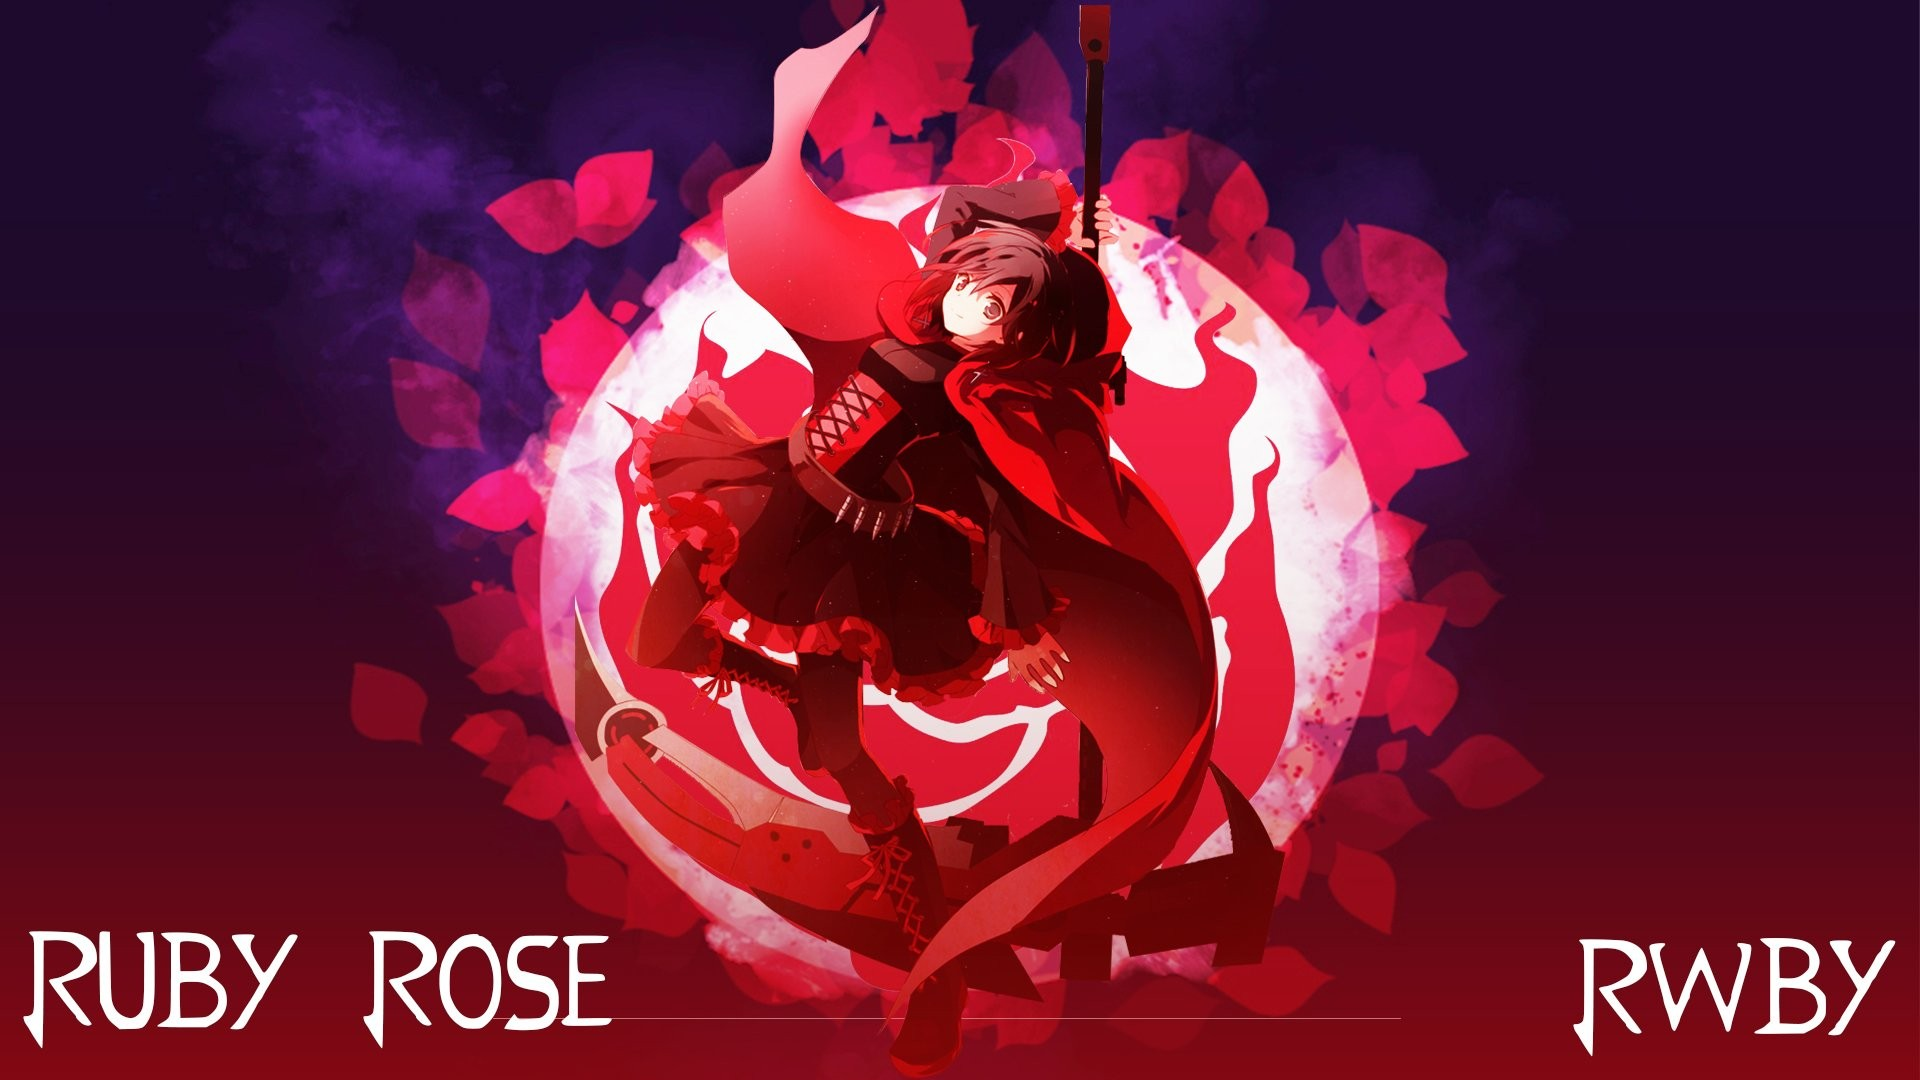 Ruby Rose RWBY Wallpaper 1 Download Free Beautiful Wallpapers For